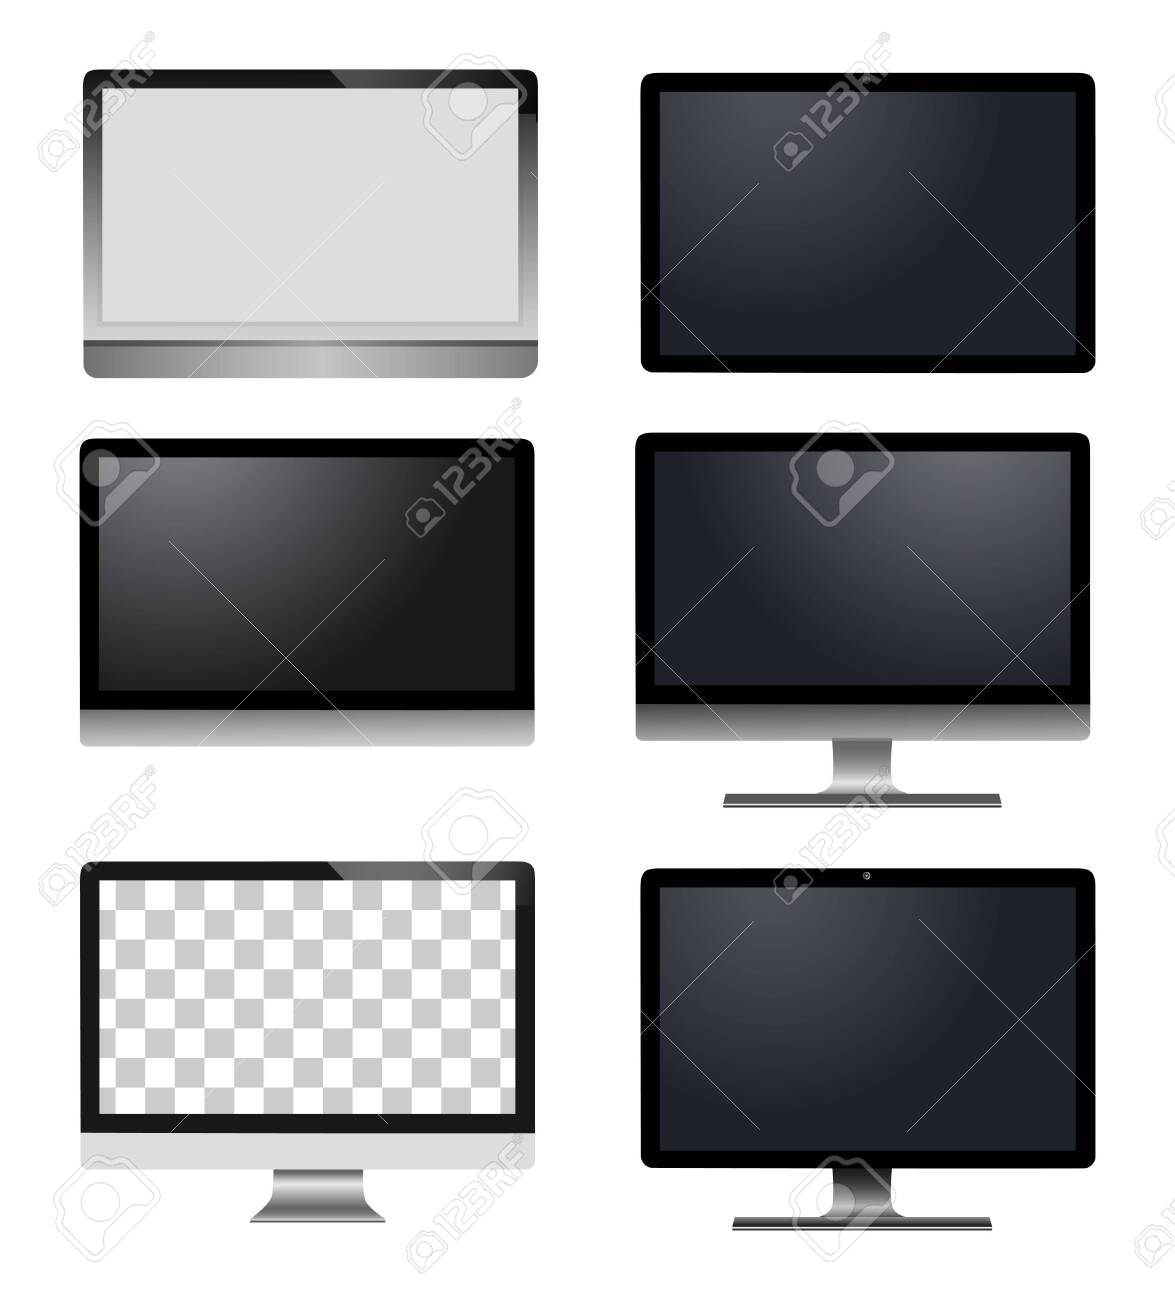 Realistic vector laptop, tablet computer, monitor isolated - 133995404